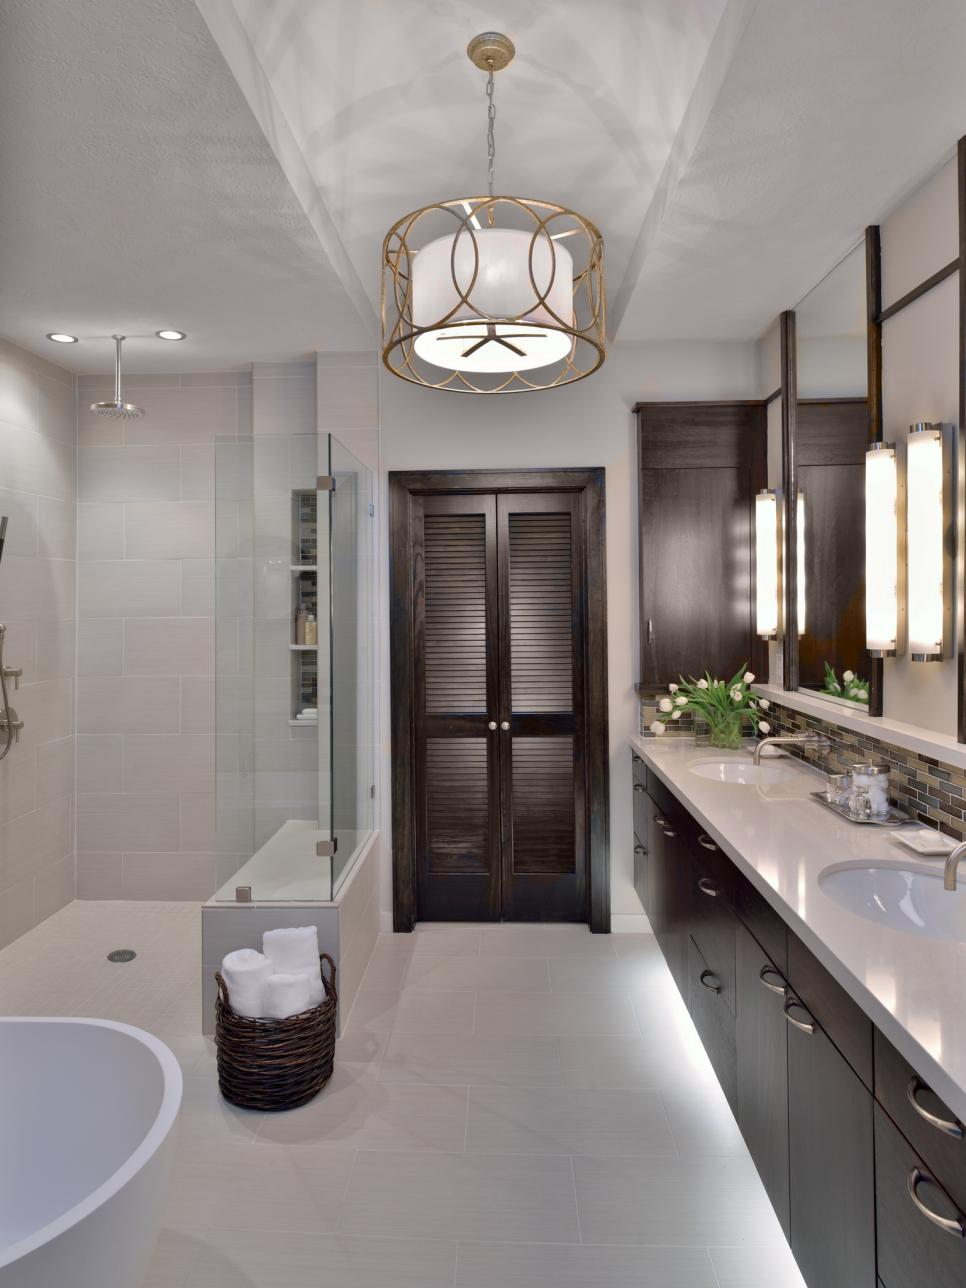 25 cool bathrooms ideas designs design trends for Modern master bathroom